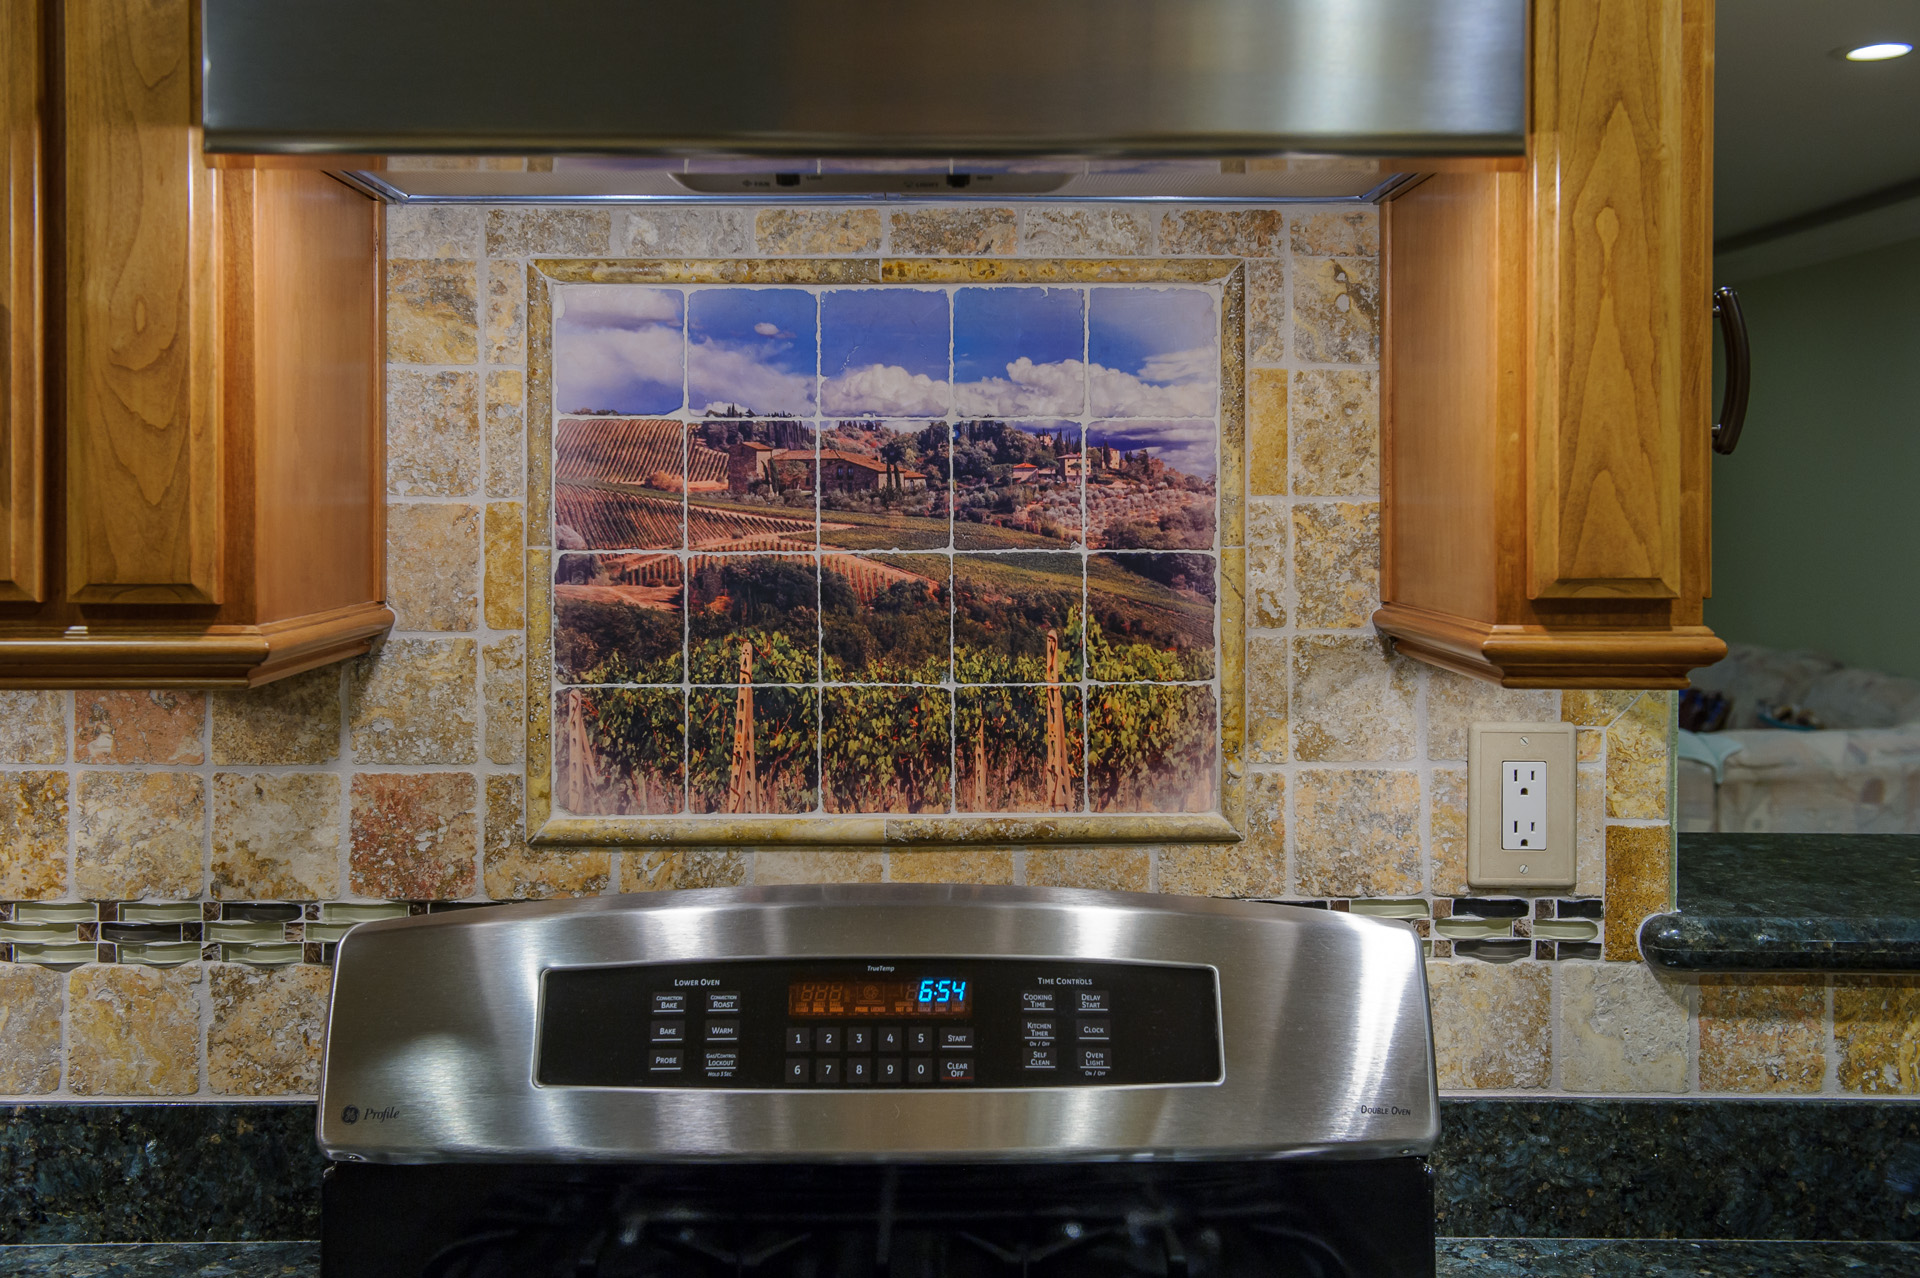 Kitchen ceramic tile mural backsplash joy studio design for Backsplash mural tile